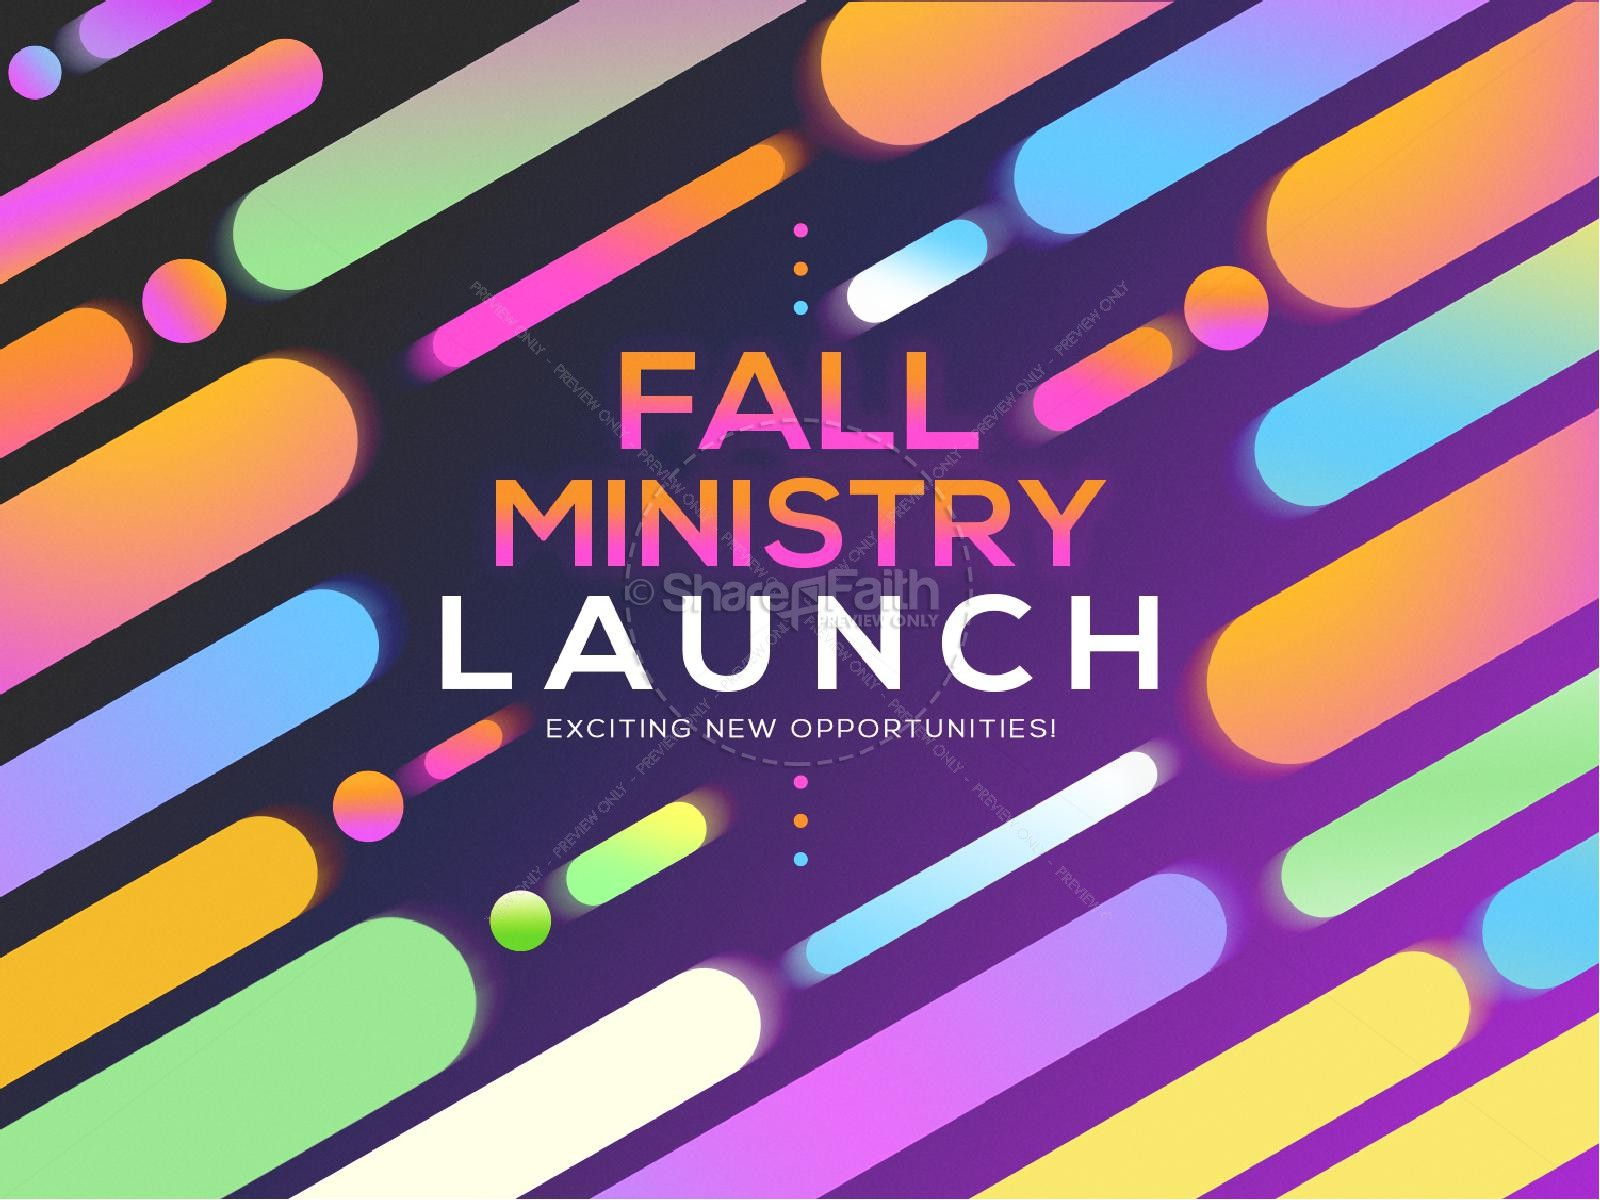 Fall Ministry Launch Church Graphic